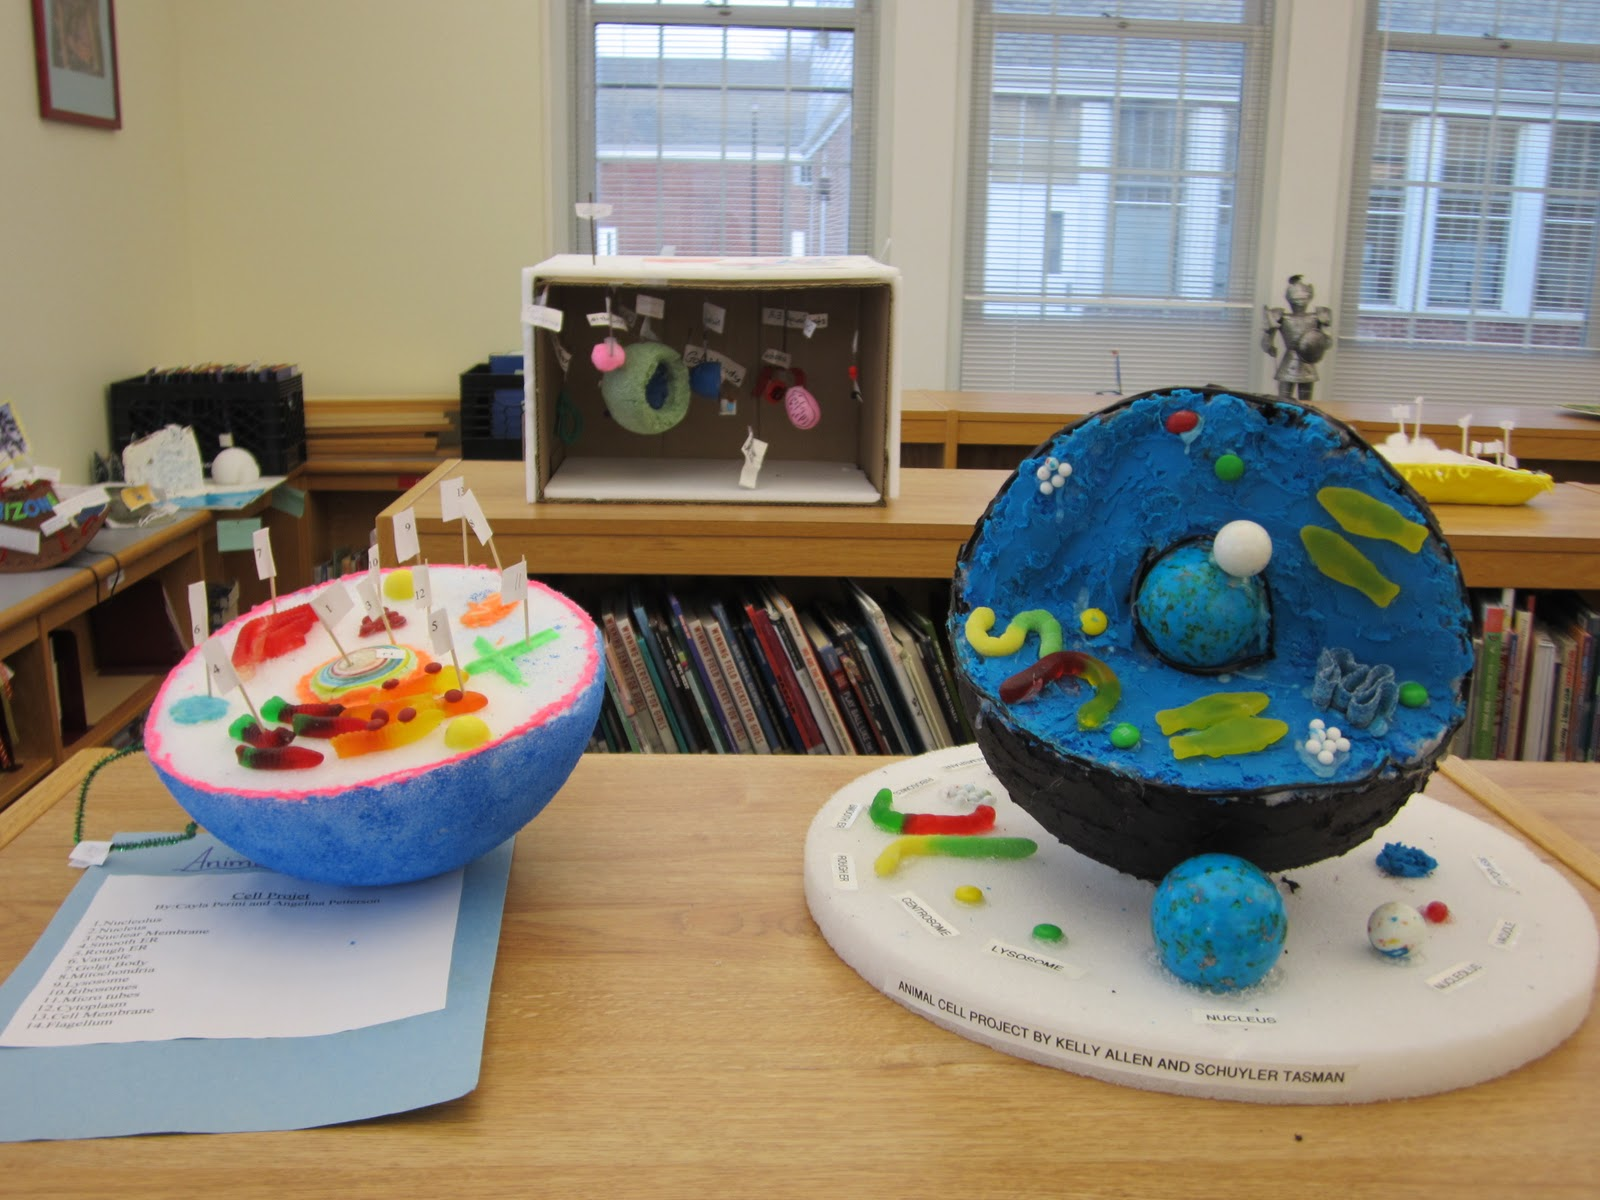 Animal cell model project for school a plant or animal cell